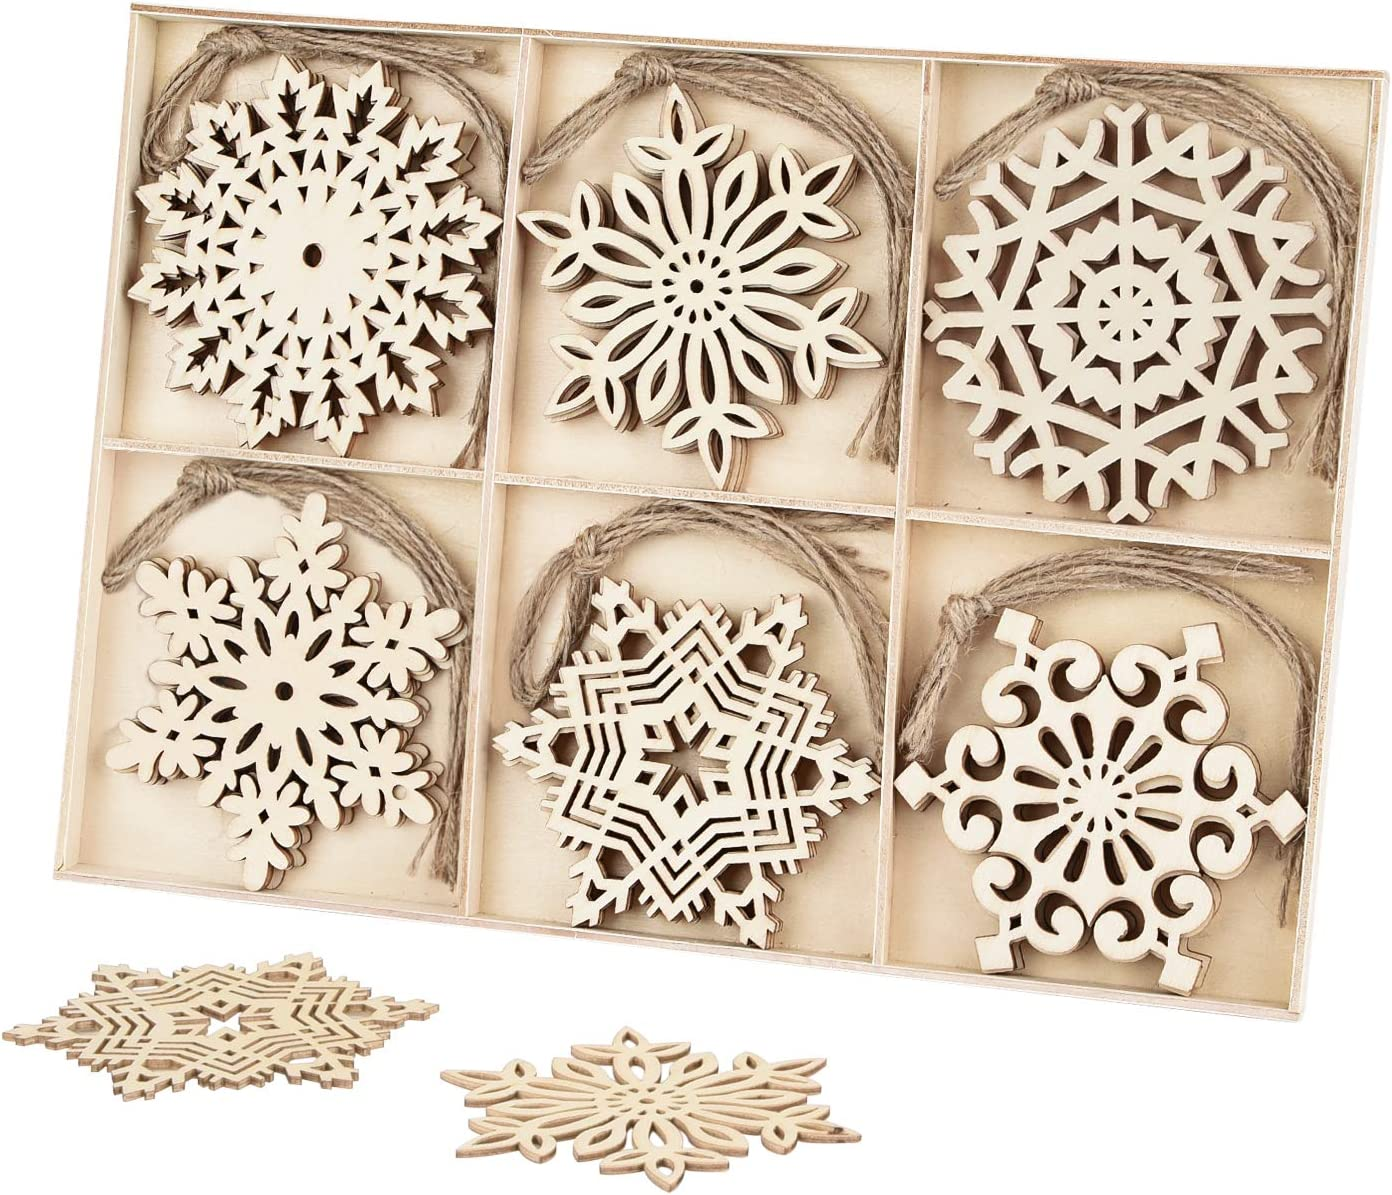 30pcs Unfinished Wooden Snowflakes Ornaments, Binswloo 4 inch Wood Hanging Embellishments for Rustic Christmas Decoration DIY Crafts, with Storage Tray